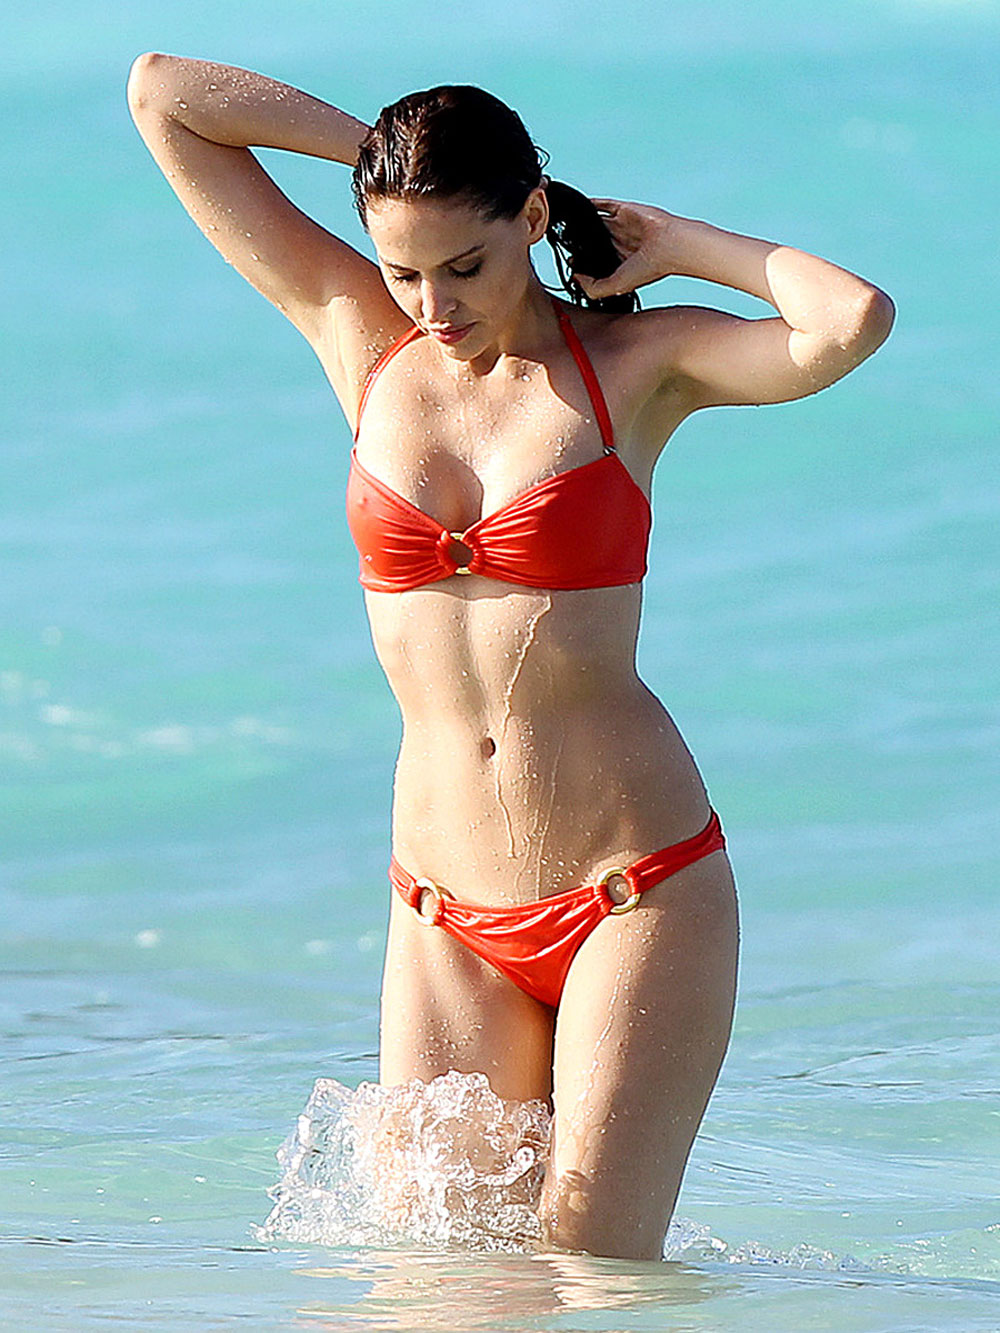 http://www.hawtcelebs.com/wp-content/uploads/2012/12/HANA-NITSCHE-in-Red-Bikini-on-the-Beach-in-St.-Barts-8.jpg